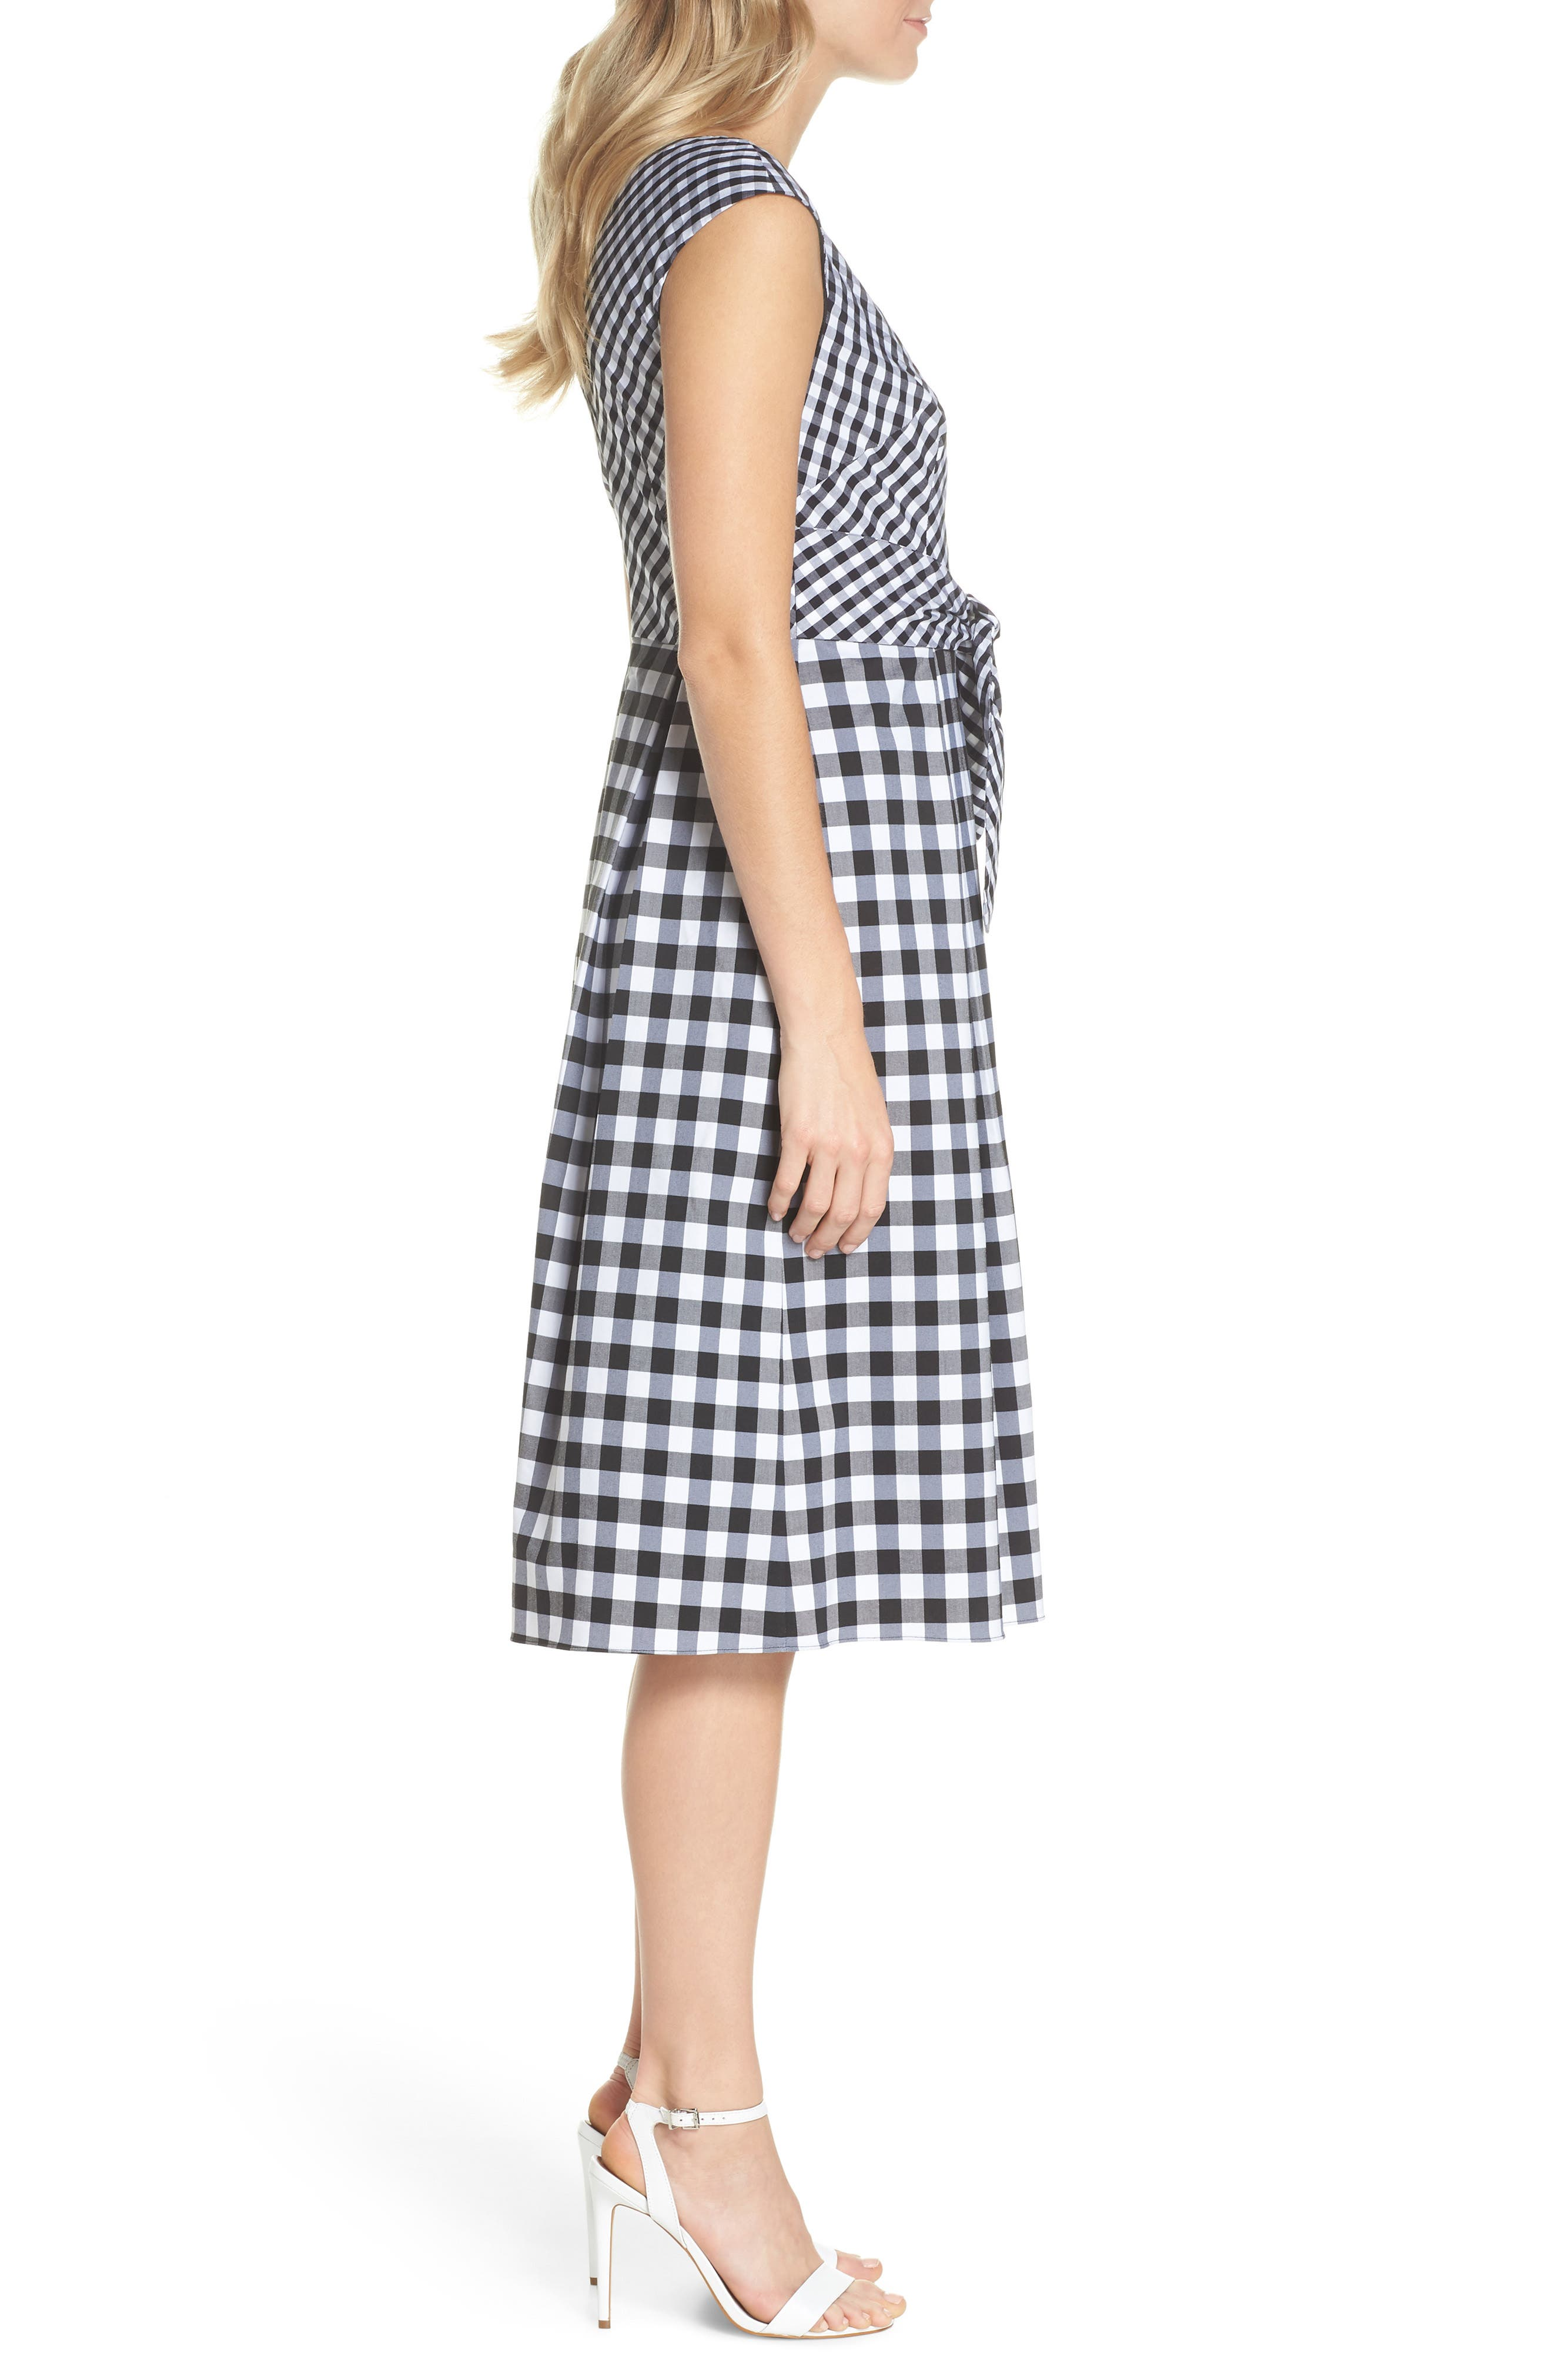 ADRIANNA PAPELL,                             Gingham Tie Front Midi Dress,                             Alternate thumbnail 3, color,                             002